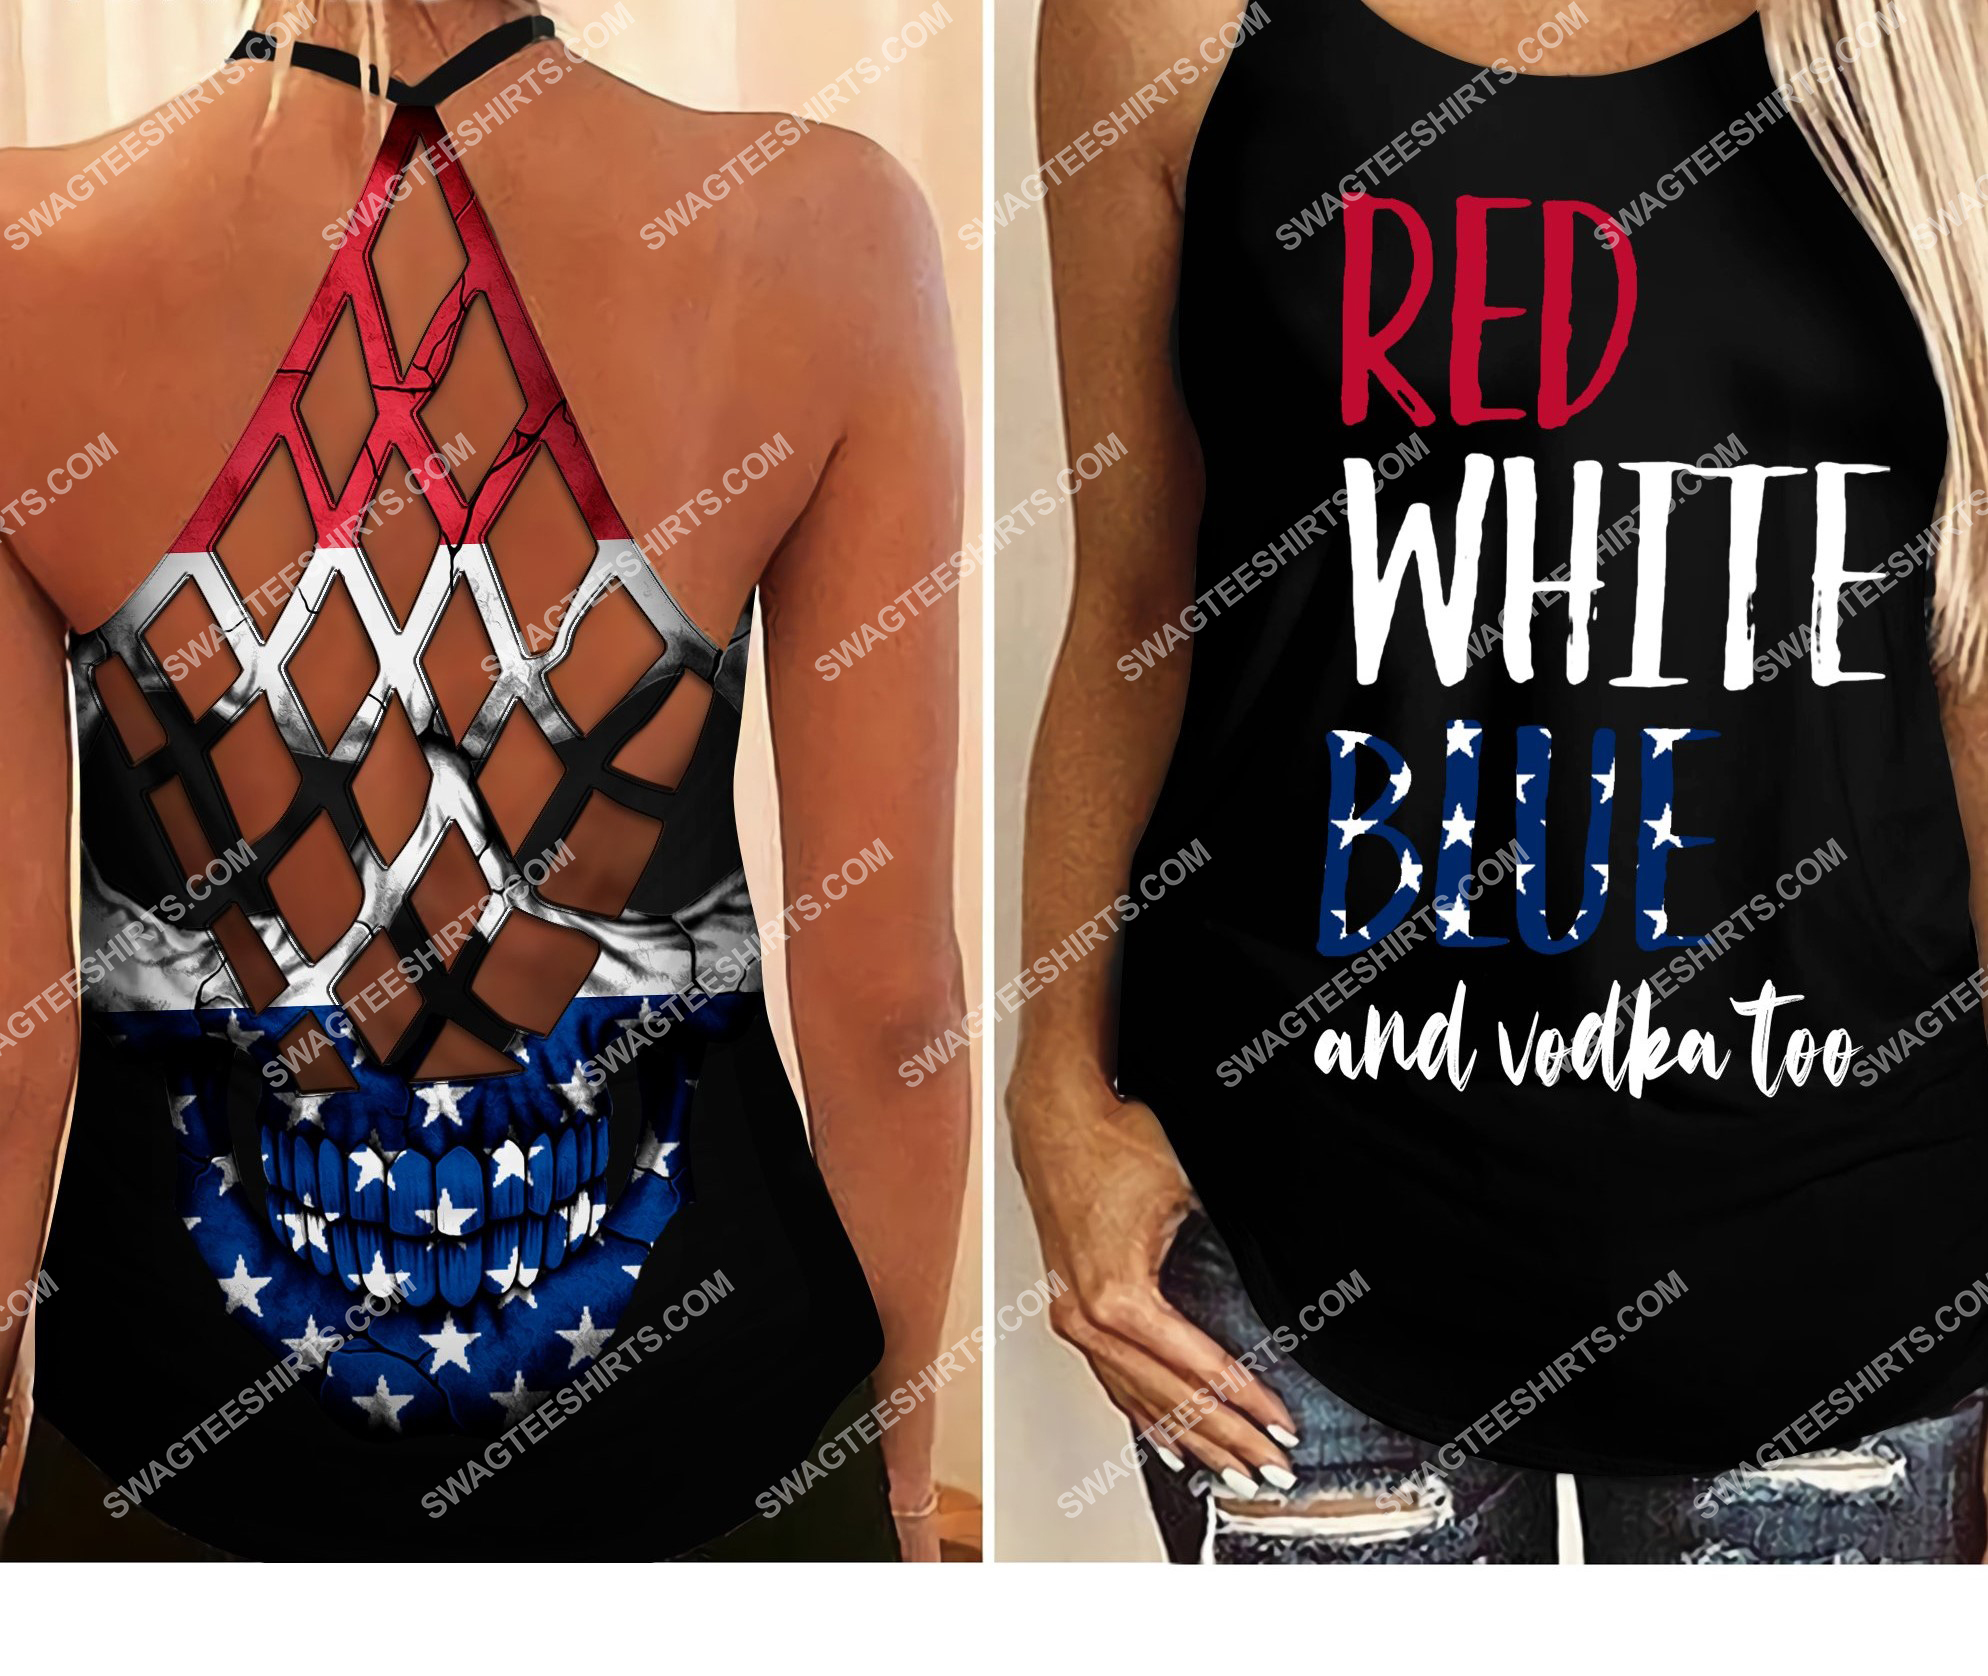 [Top-selling] fourth of july red white blue and vodka too all over printed strappy back tank top - maria